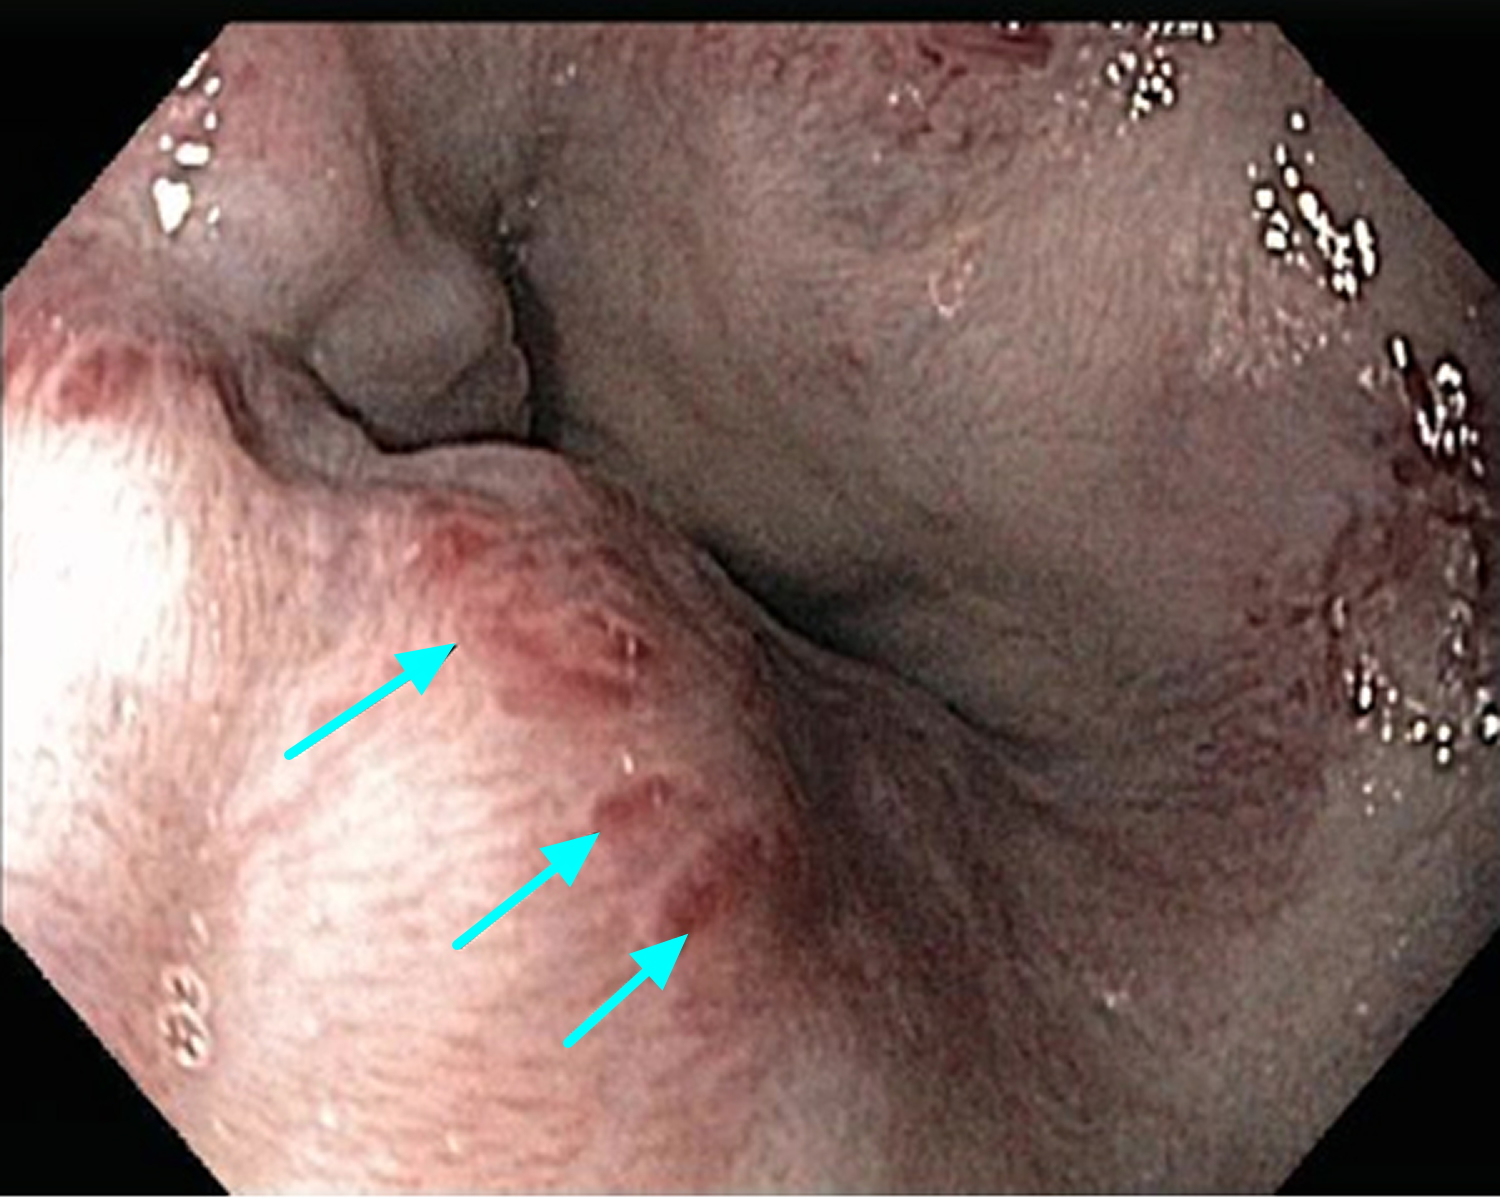 esophageal varices with red marks or red spots